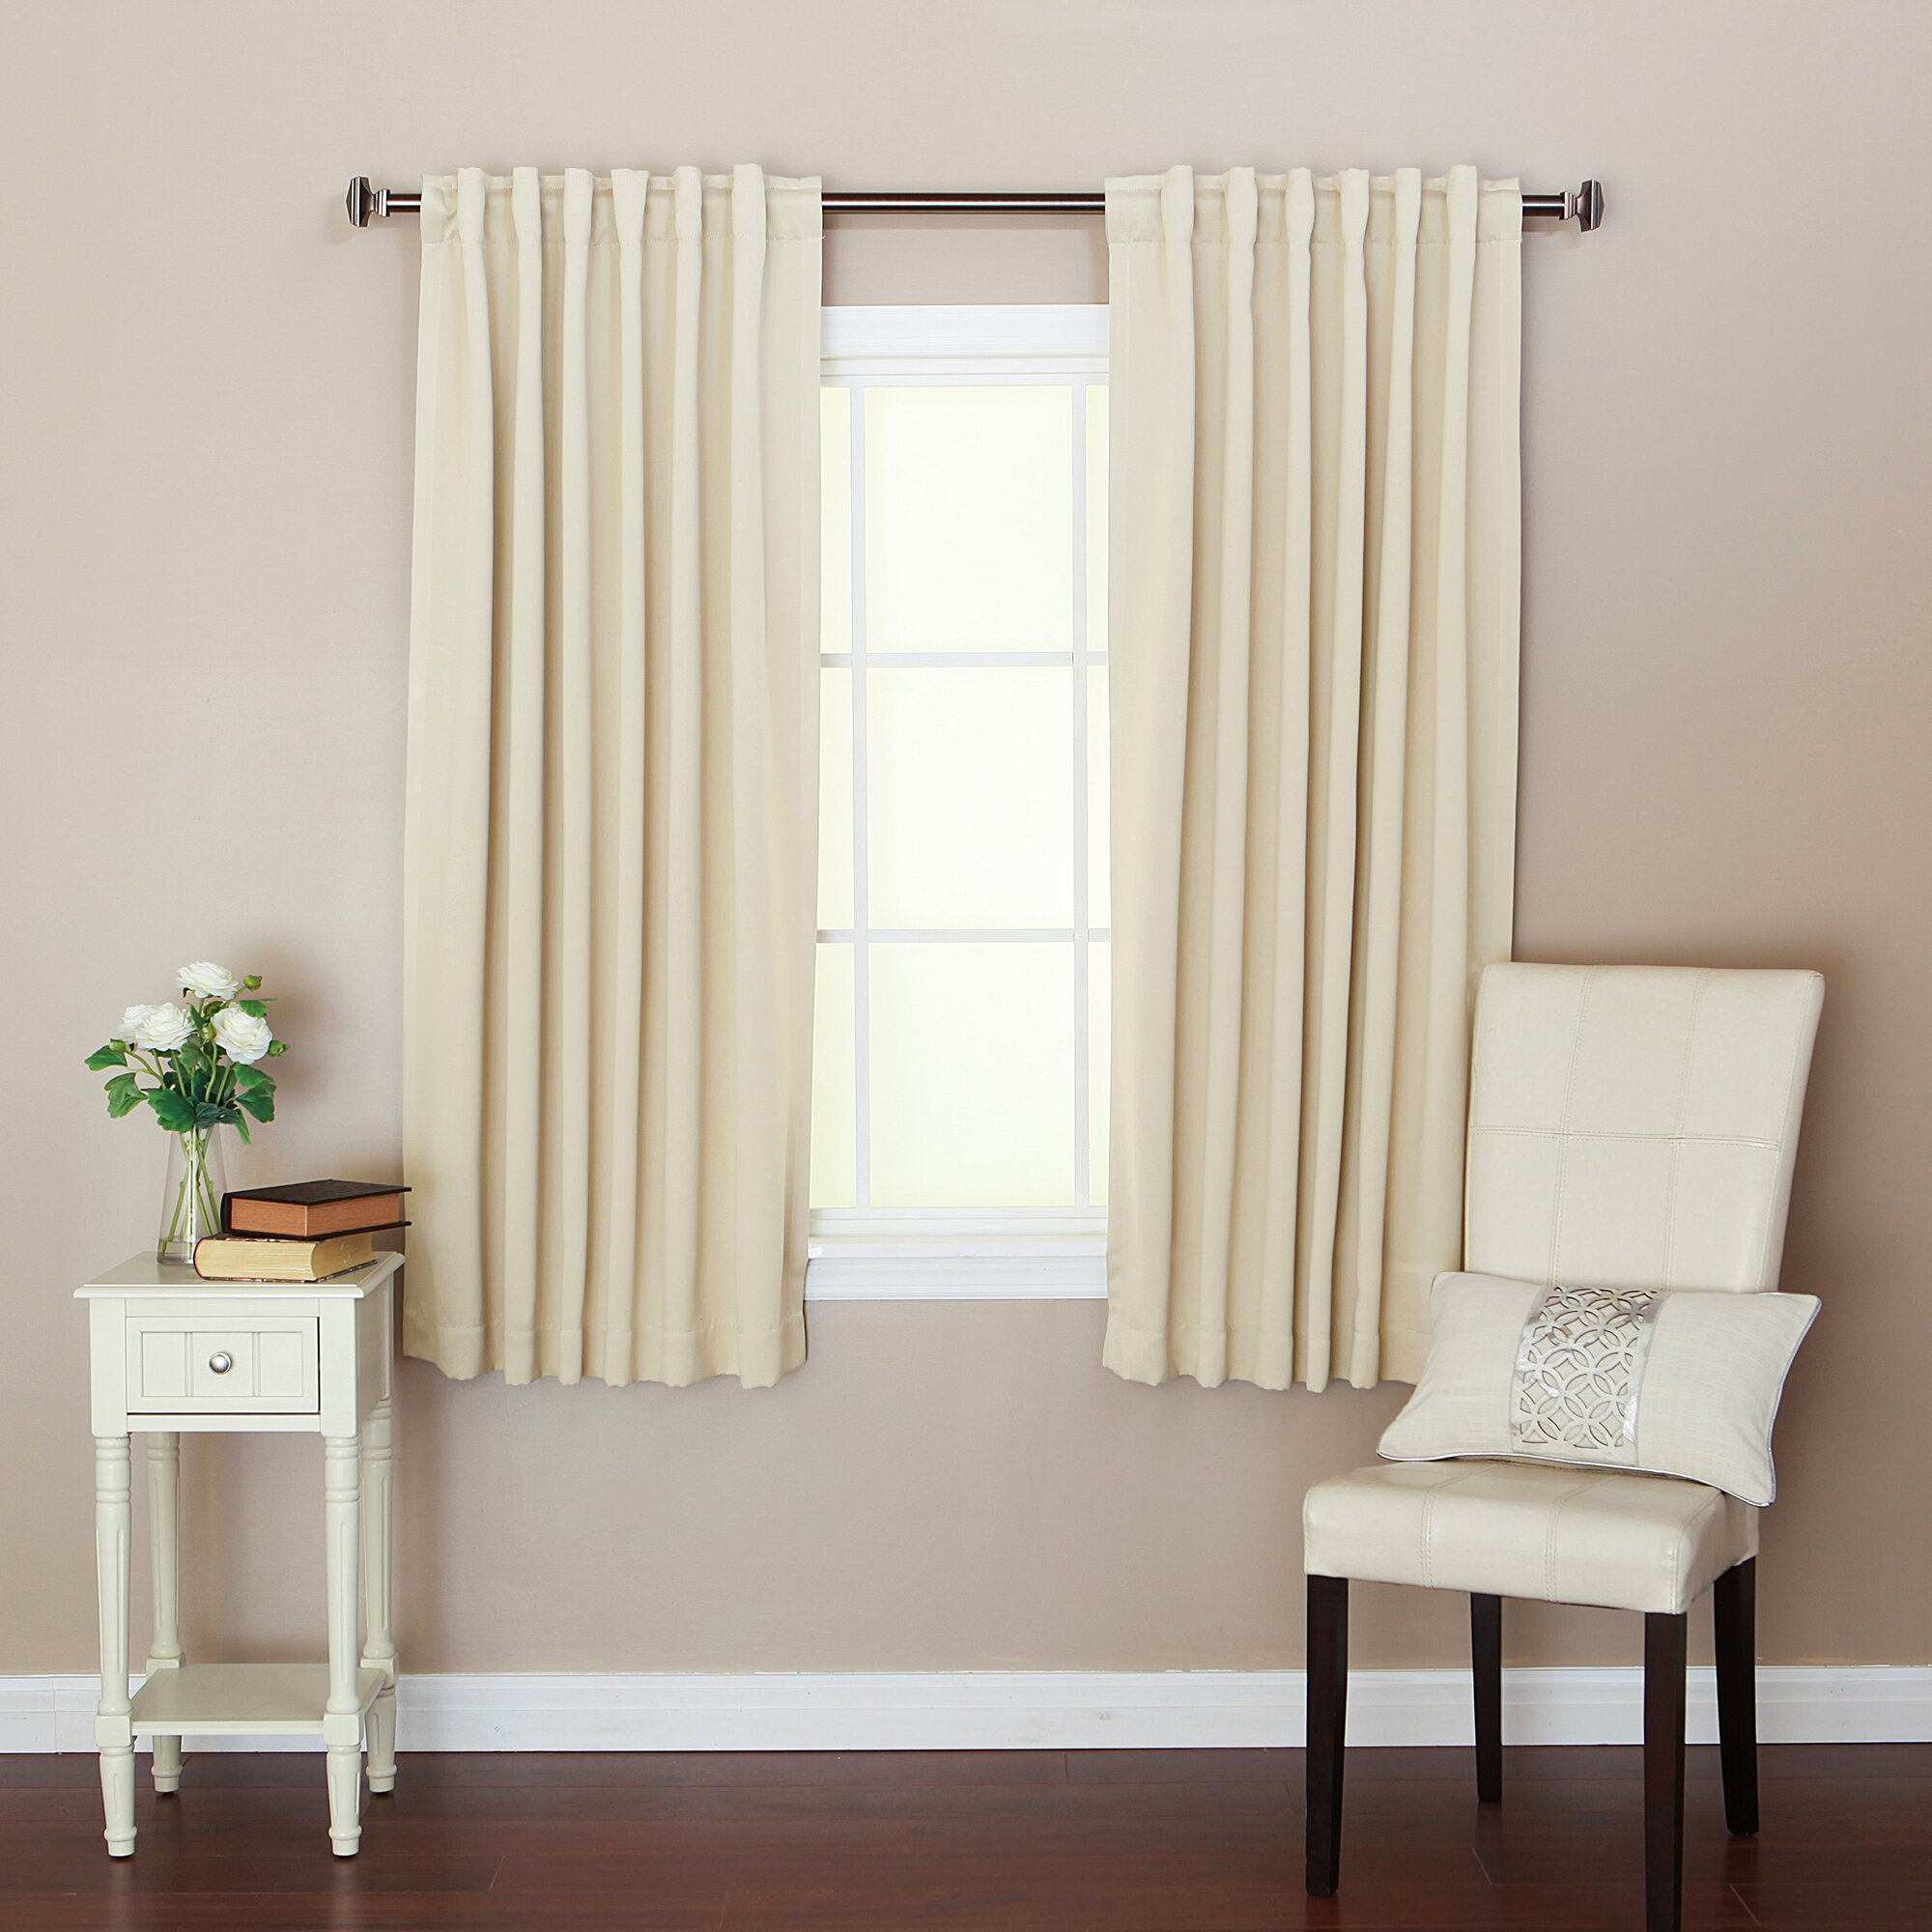 Beachcrest Home Sweetwater Room Darkening Thermal Blackout